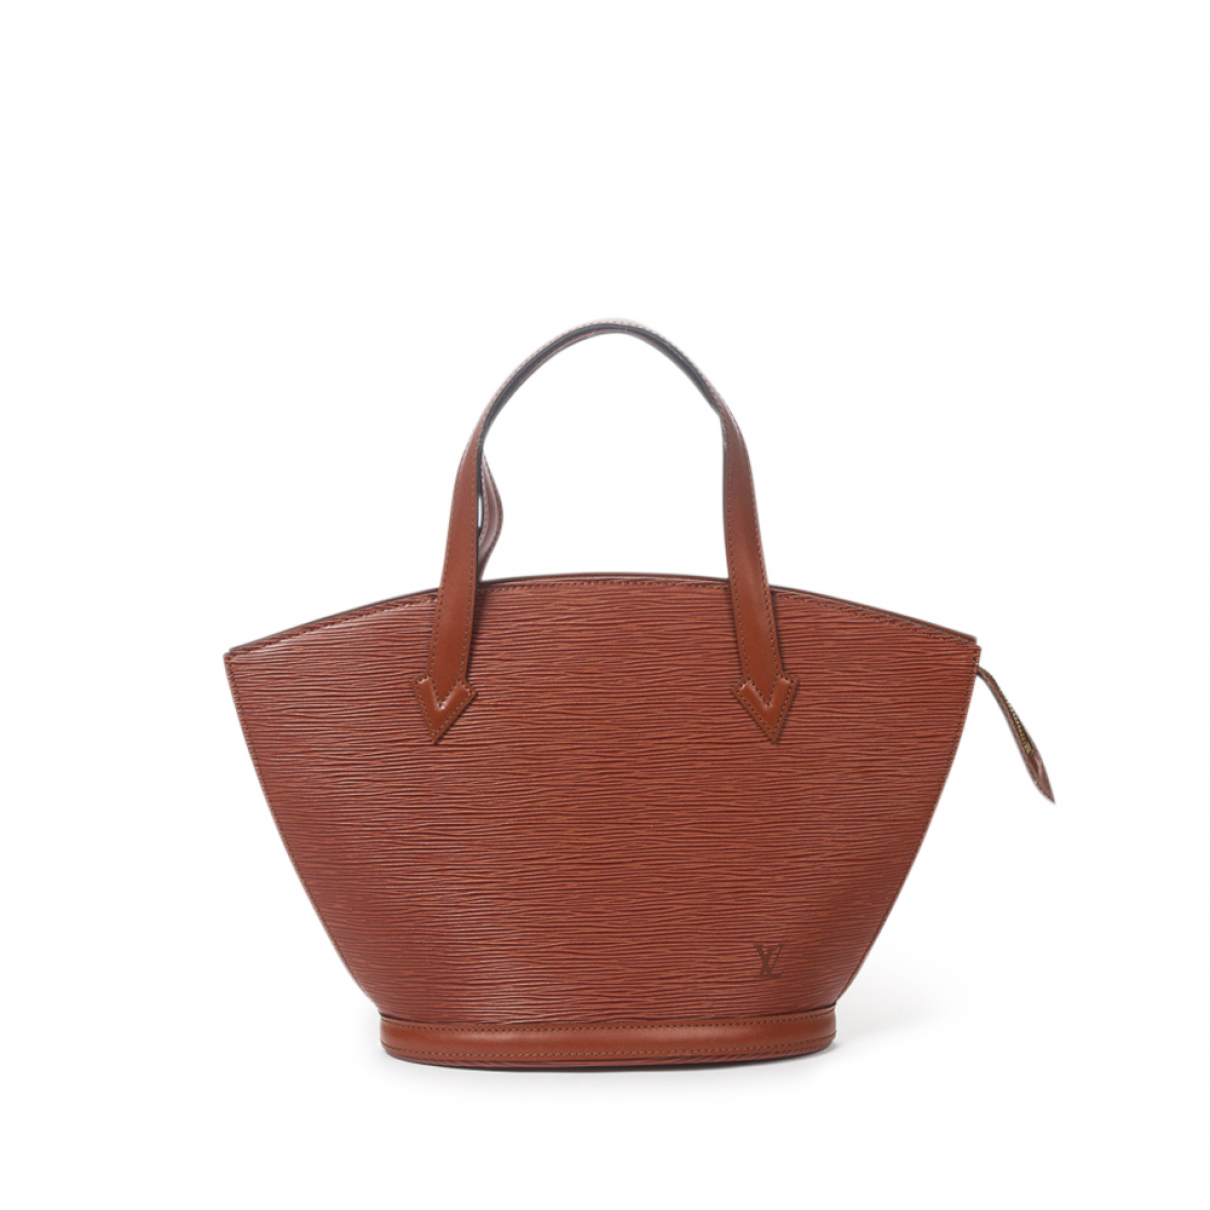 Louis Vuitton - Sac a main Saint Jacques pour femme en cuir - kaki